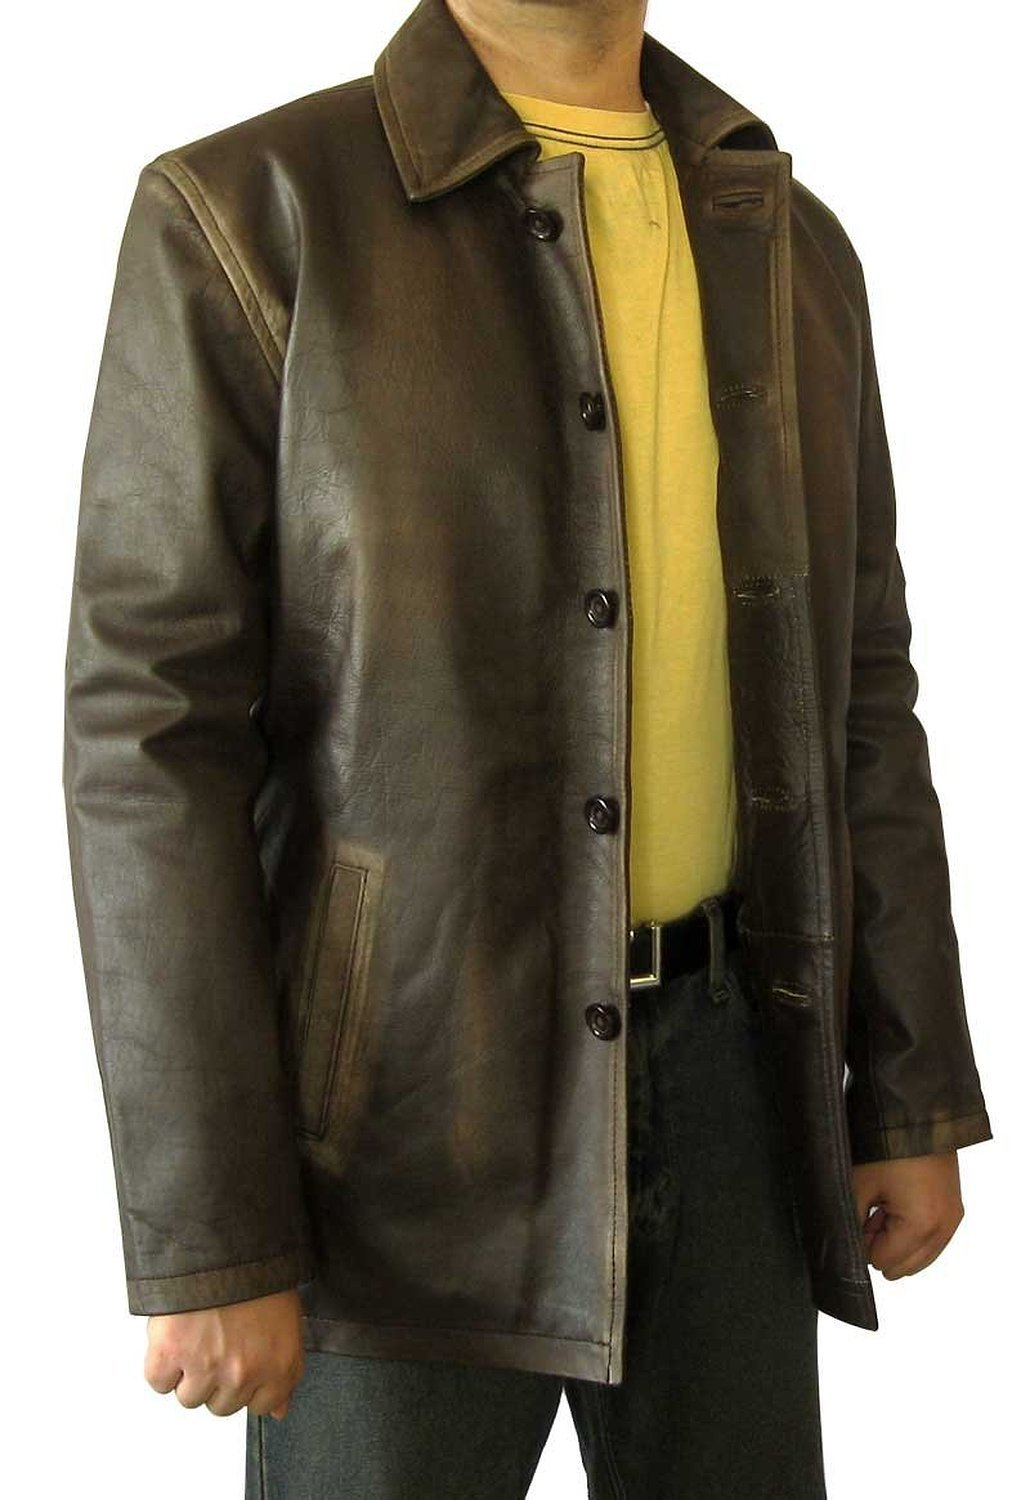 Dean Winchester Brown Winter Coat - Dark Brown Leather Coat (M) [RL-SUPN-BR-M]